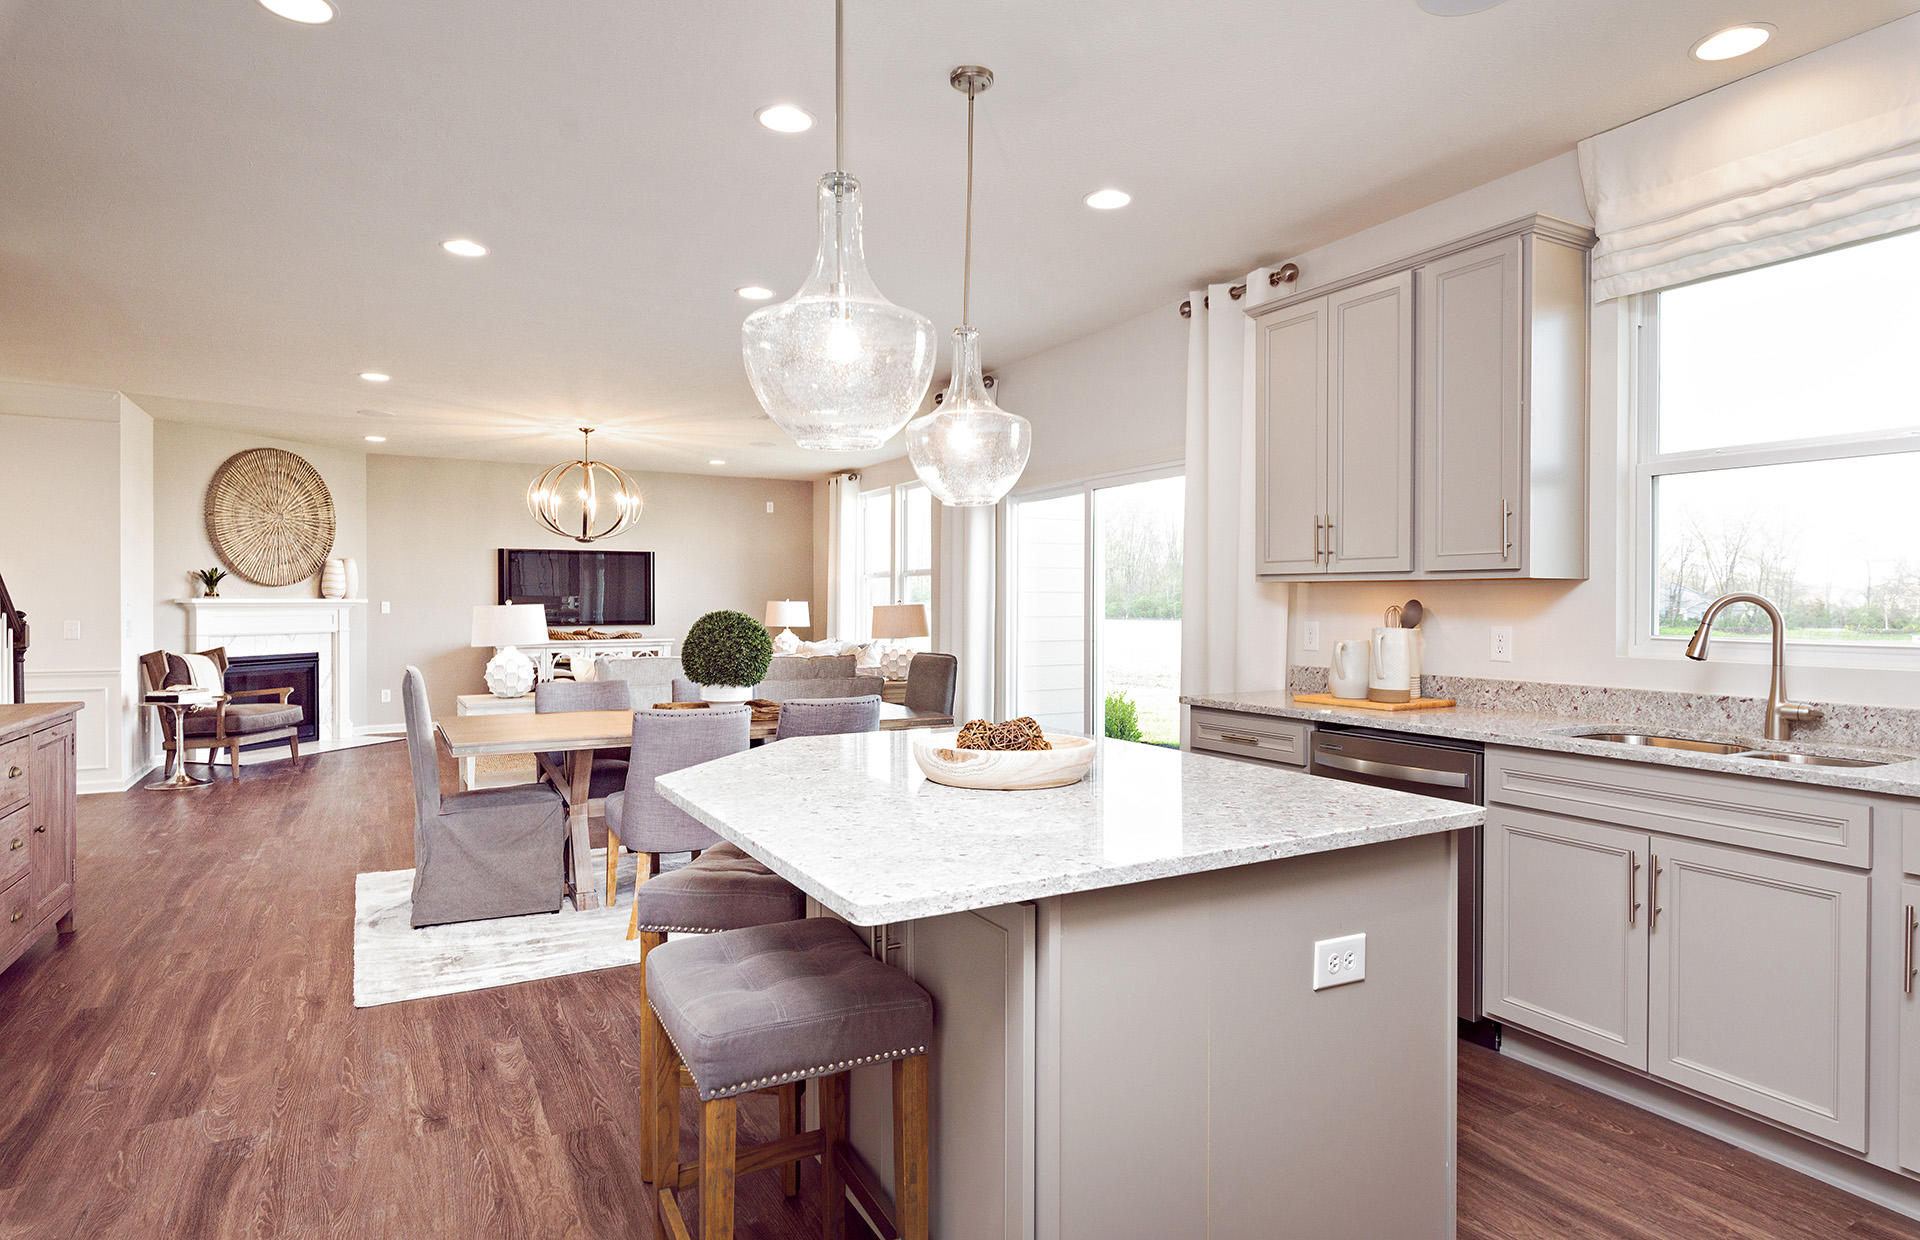 Wood Hollow by Pulte Homes image 5